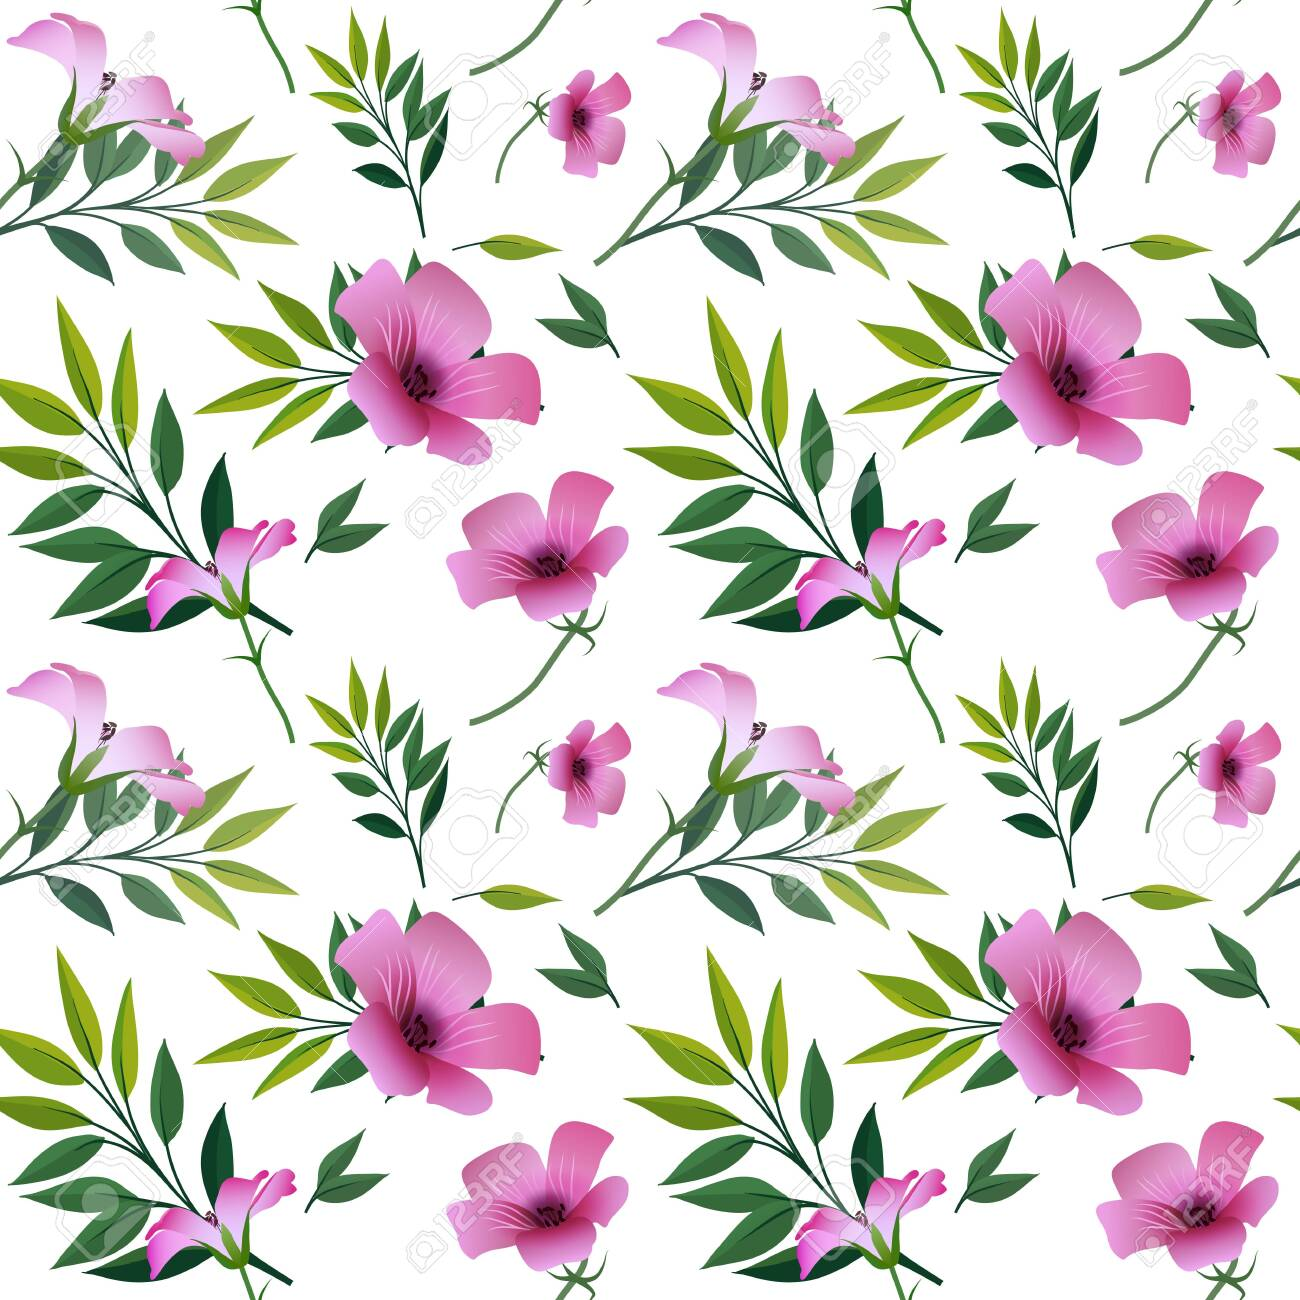 Seamless floral print, bright purple with pink flowers and green twigs with leaves, white background. Great for decorating fabrics, textiles, gift wrapping, printed matter, interiors, advertising. - 150402472